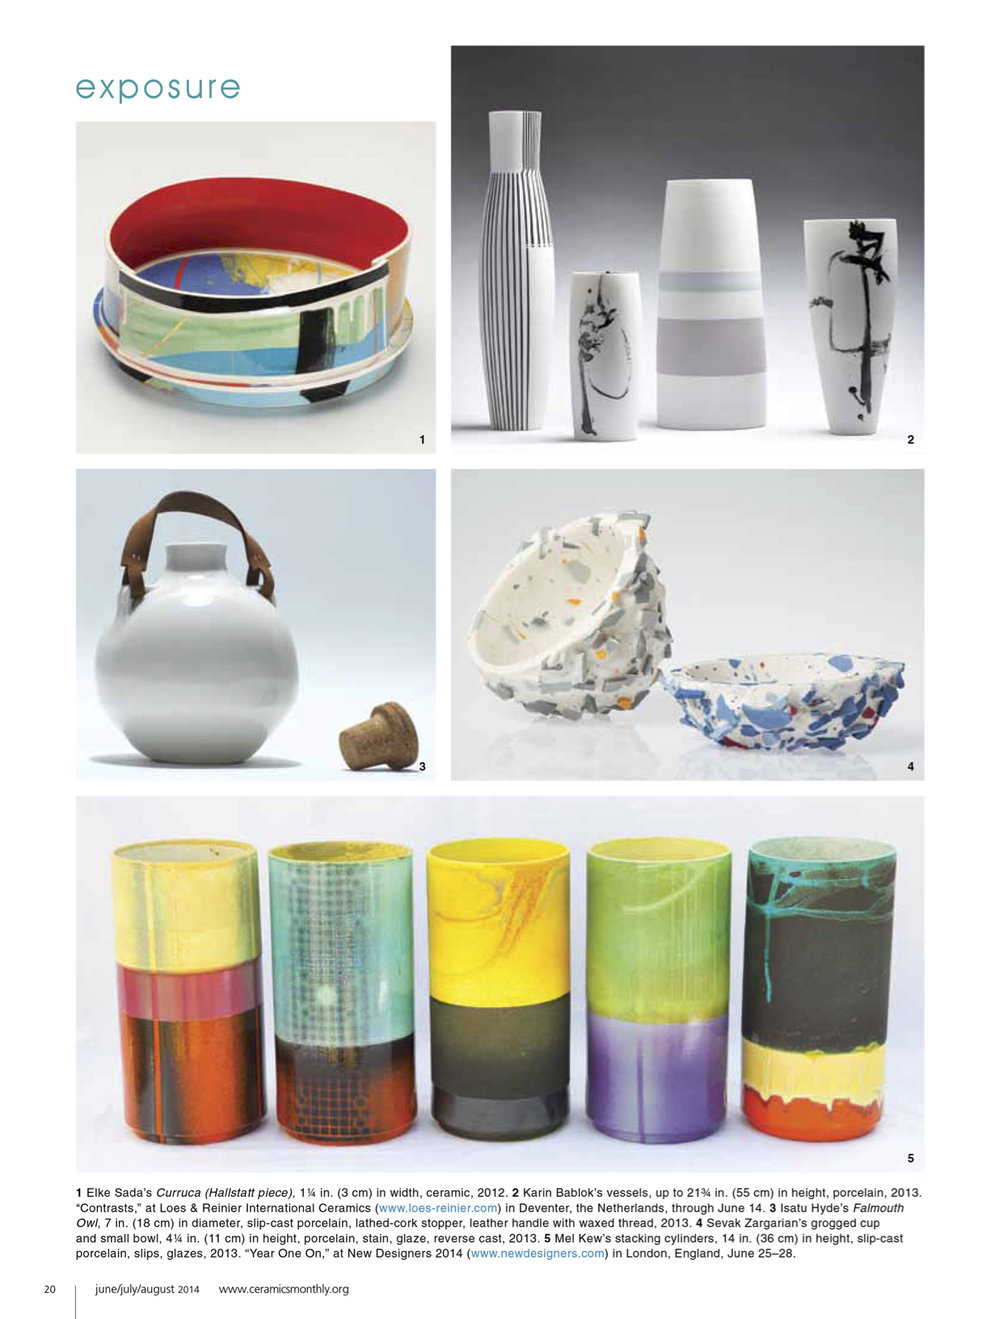 Ceramics Monthly / Jun '14